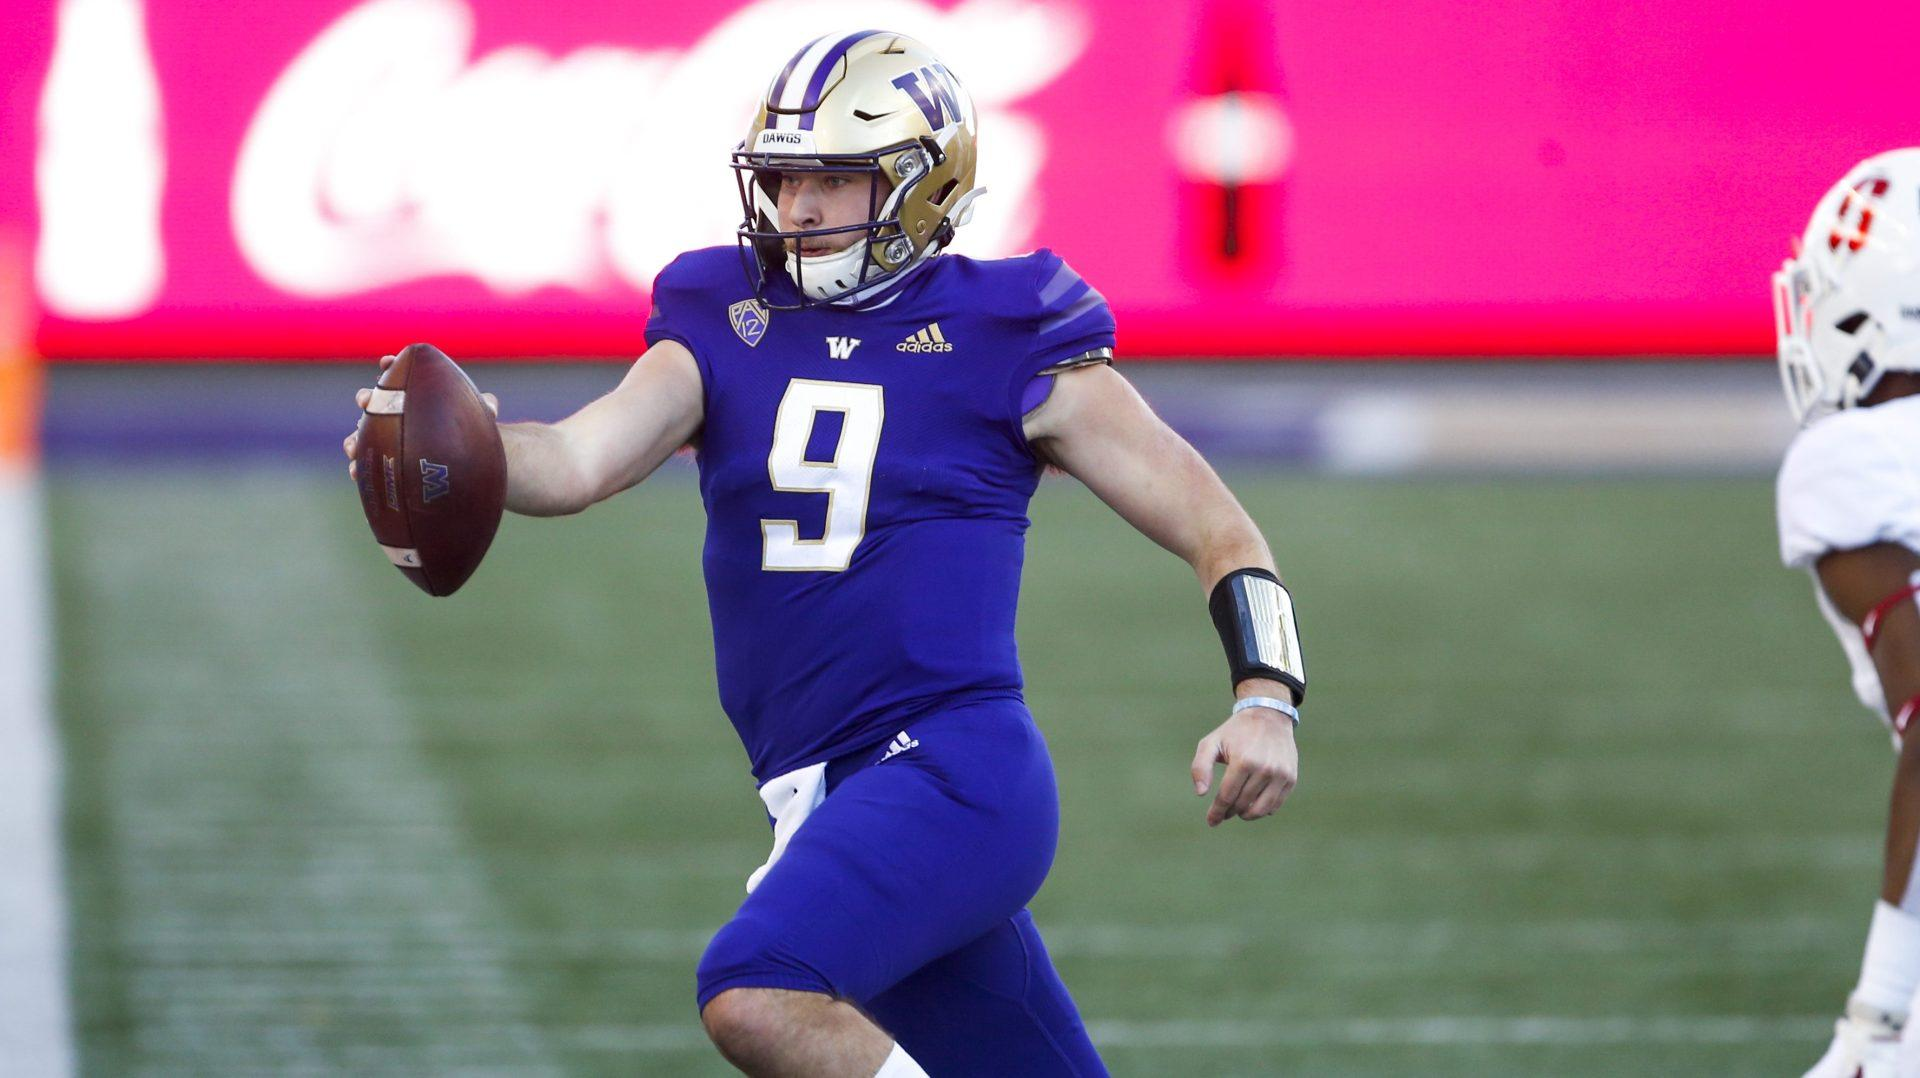 Washington QB competition open as spring practice nears end